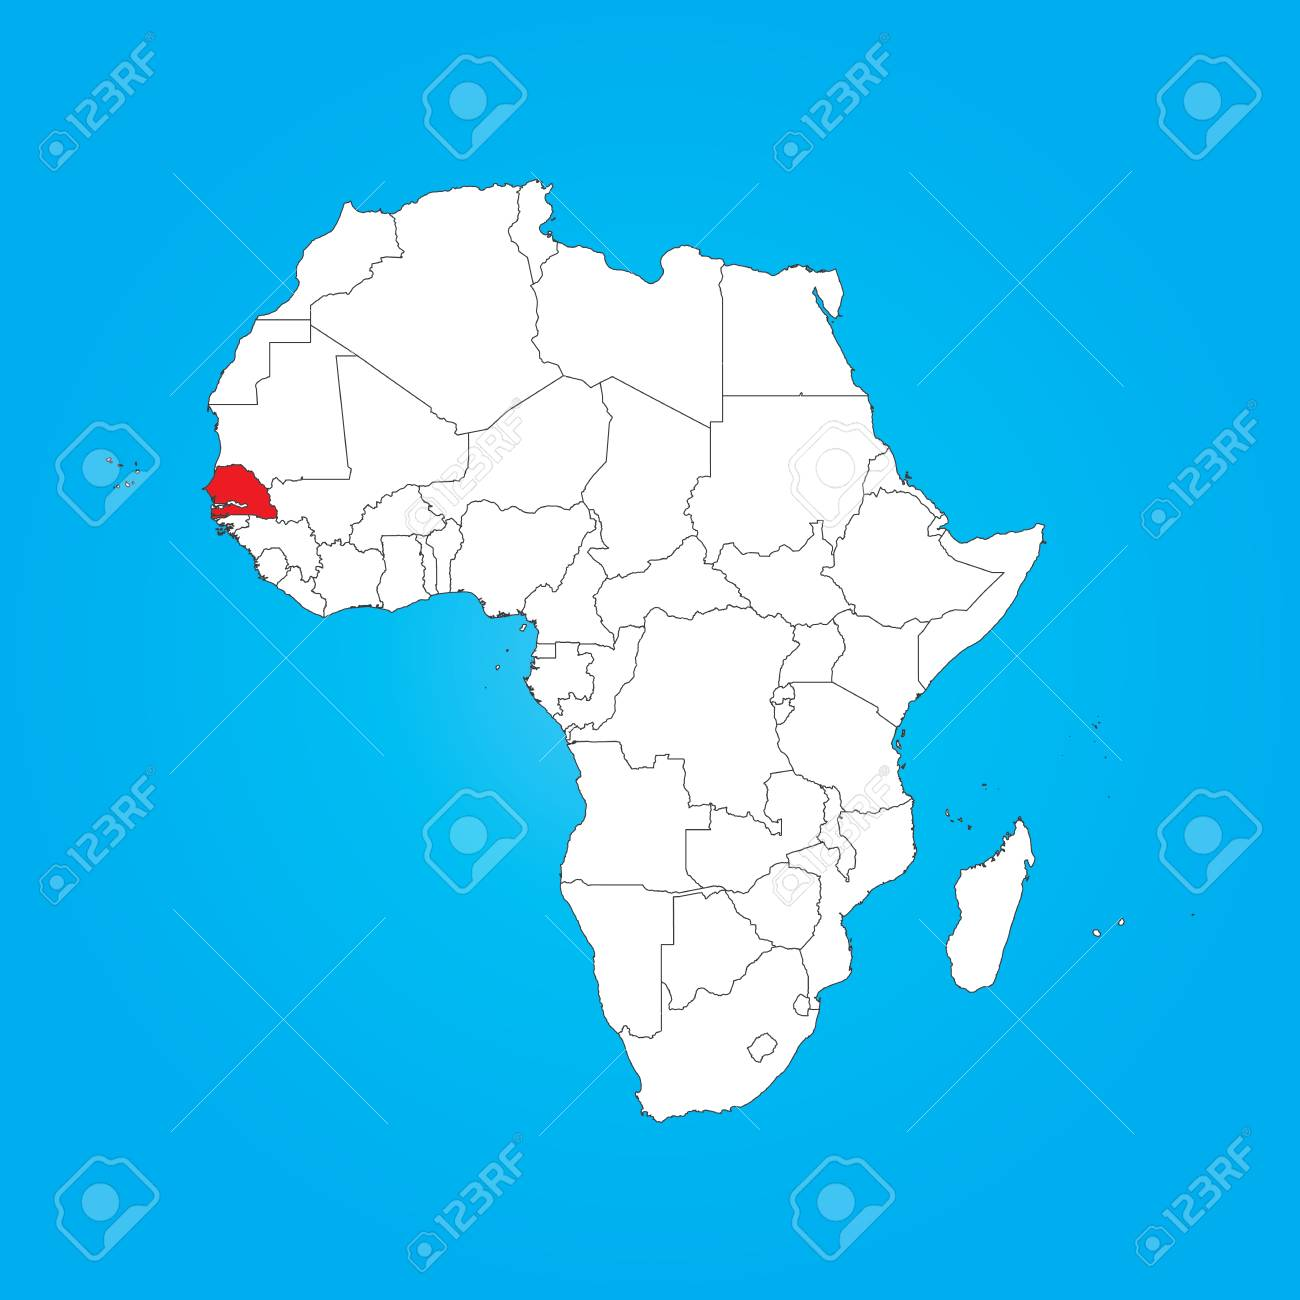 Map Of Africa Senegal.A Map Of Africa With A Selected Country Of Senegal